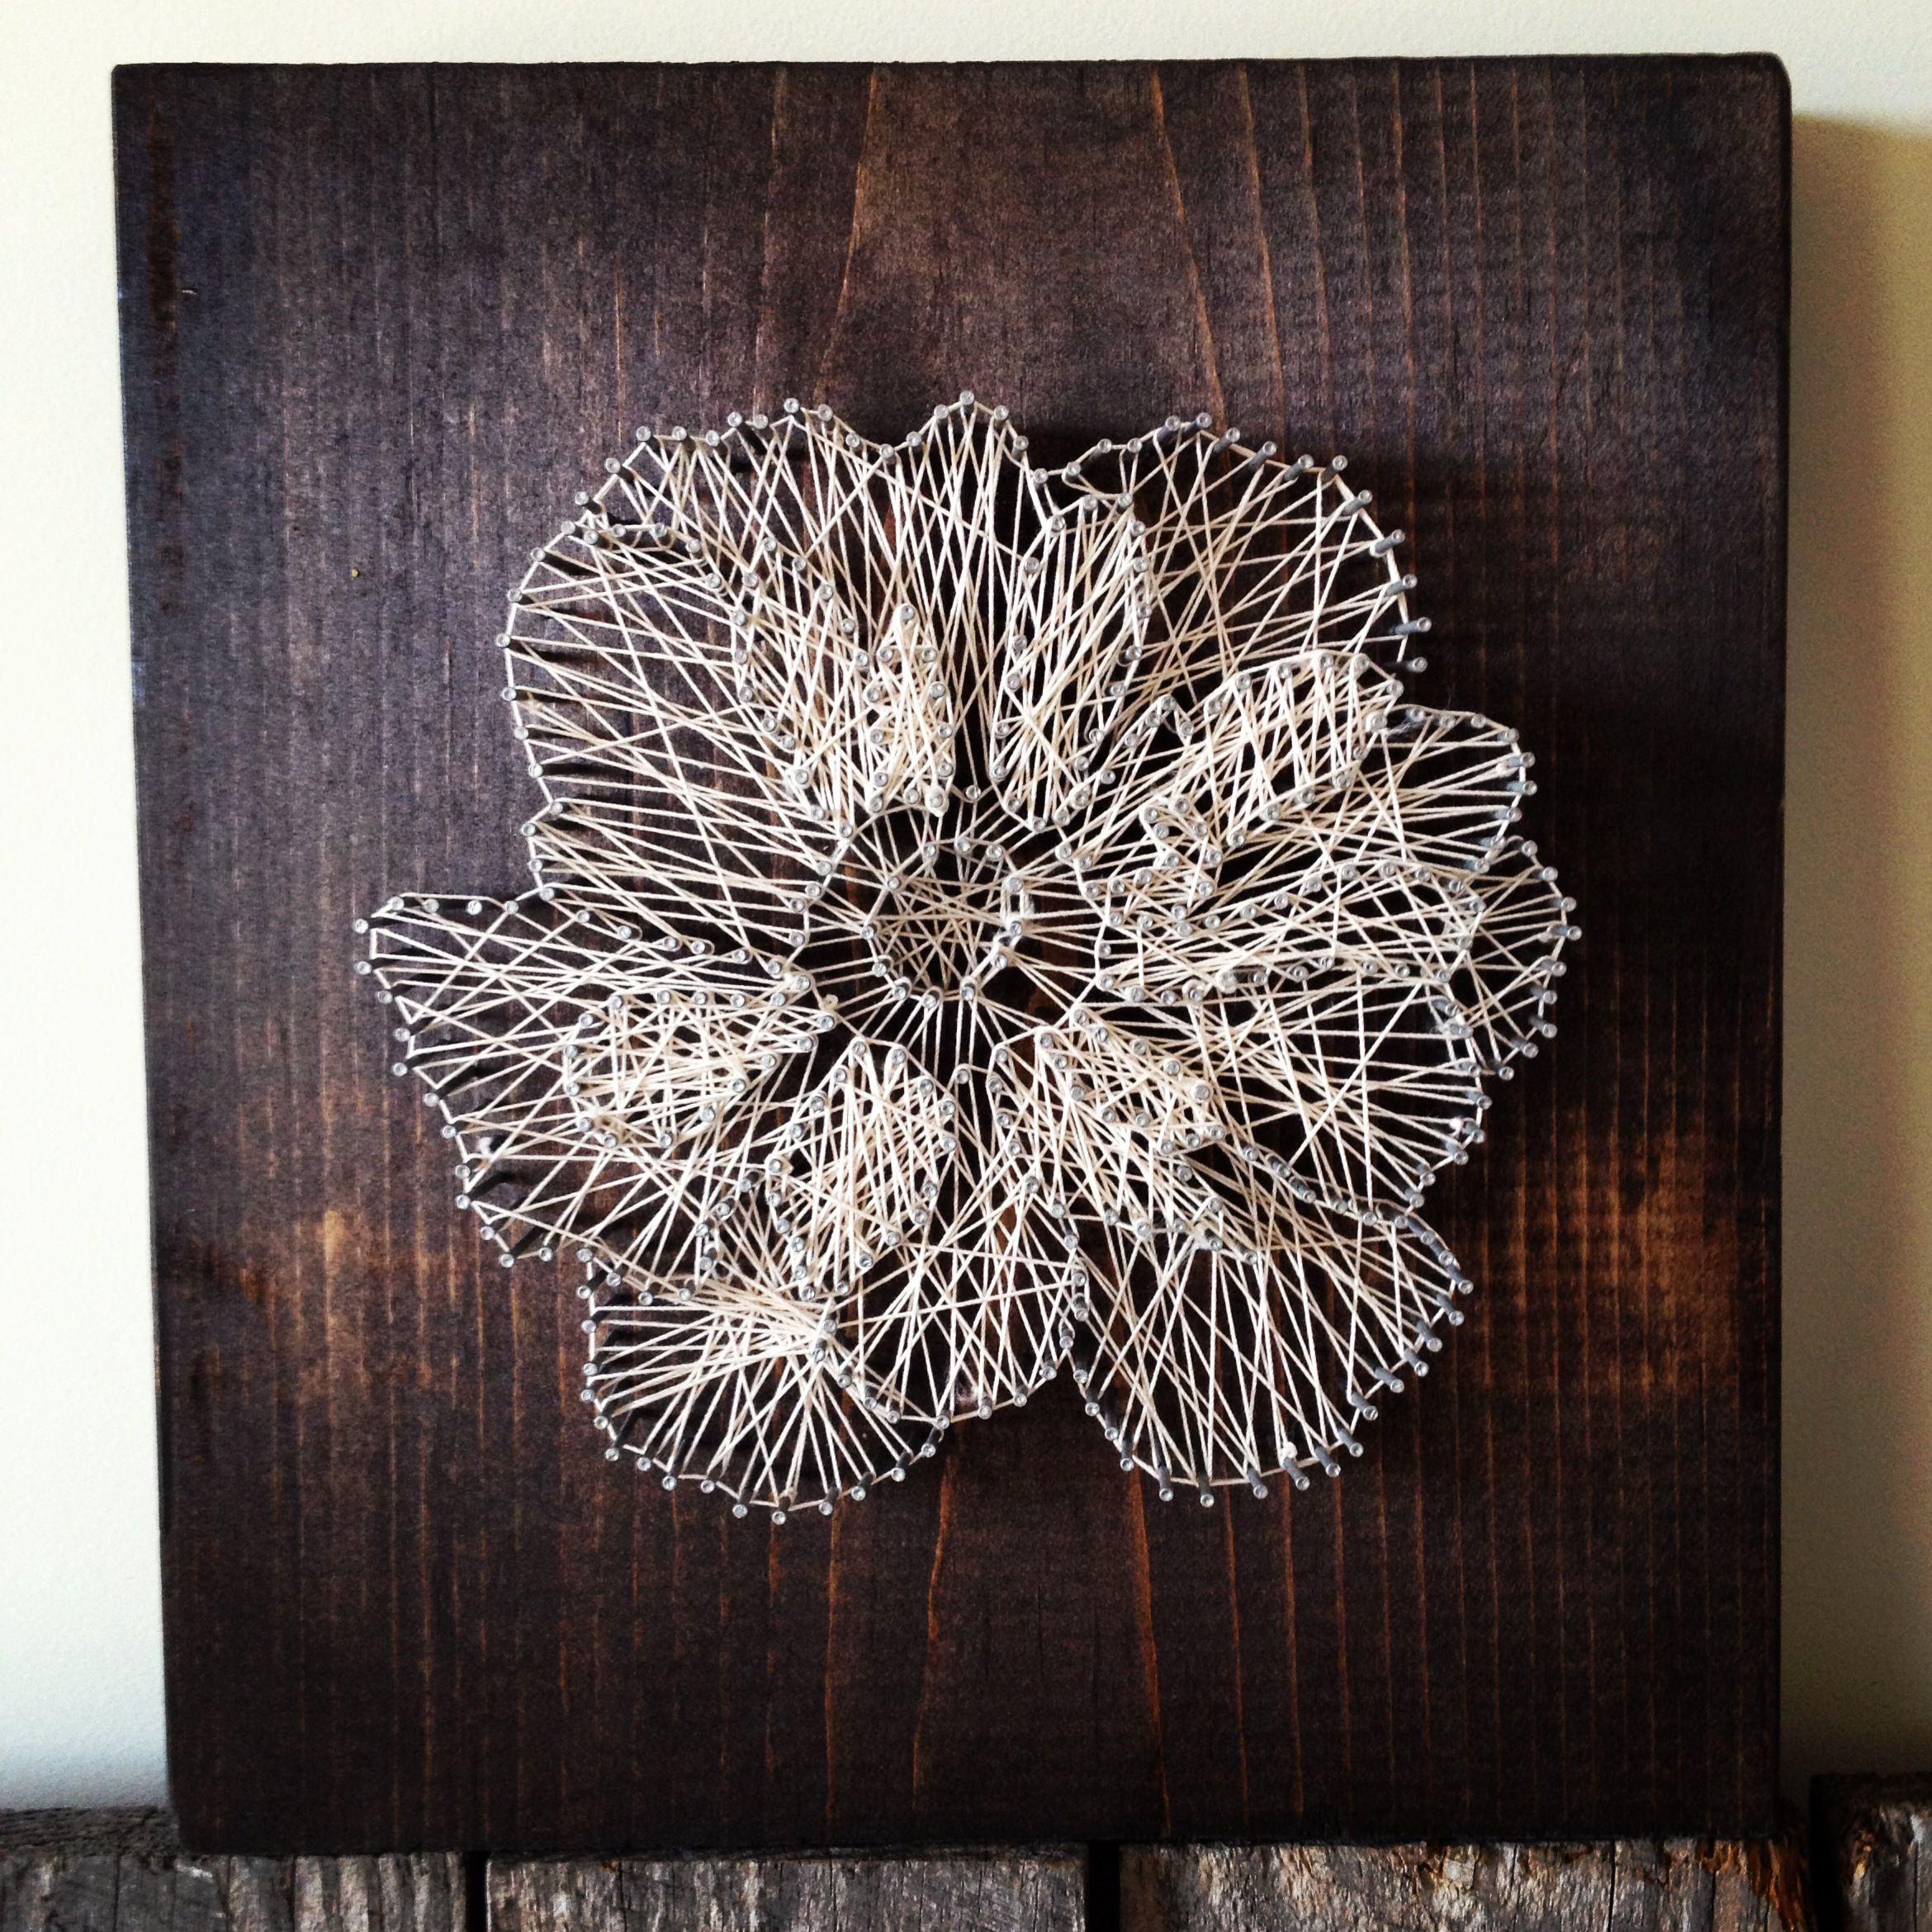 String art craftysheeeat pinterest string art yarn flowers string art prinsesfo Image collections